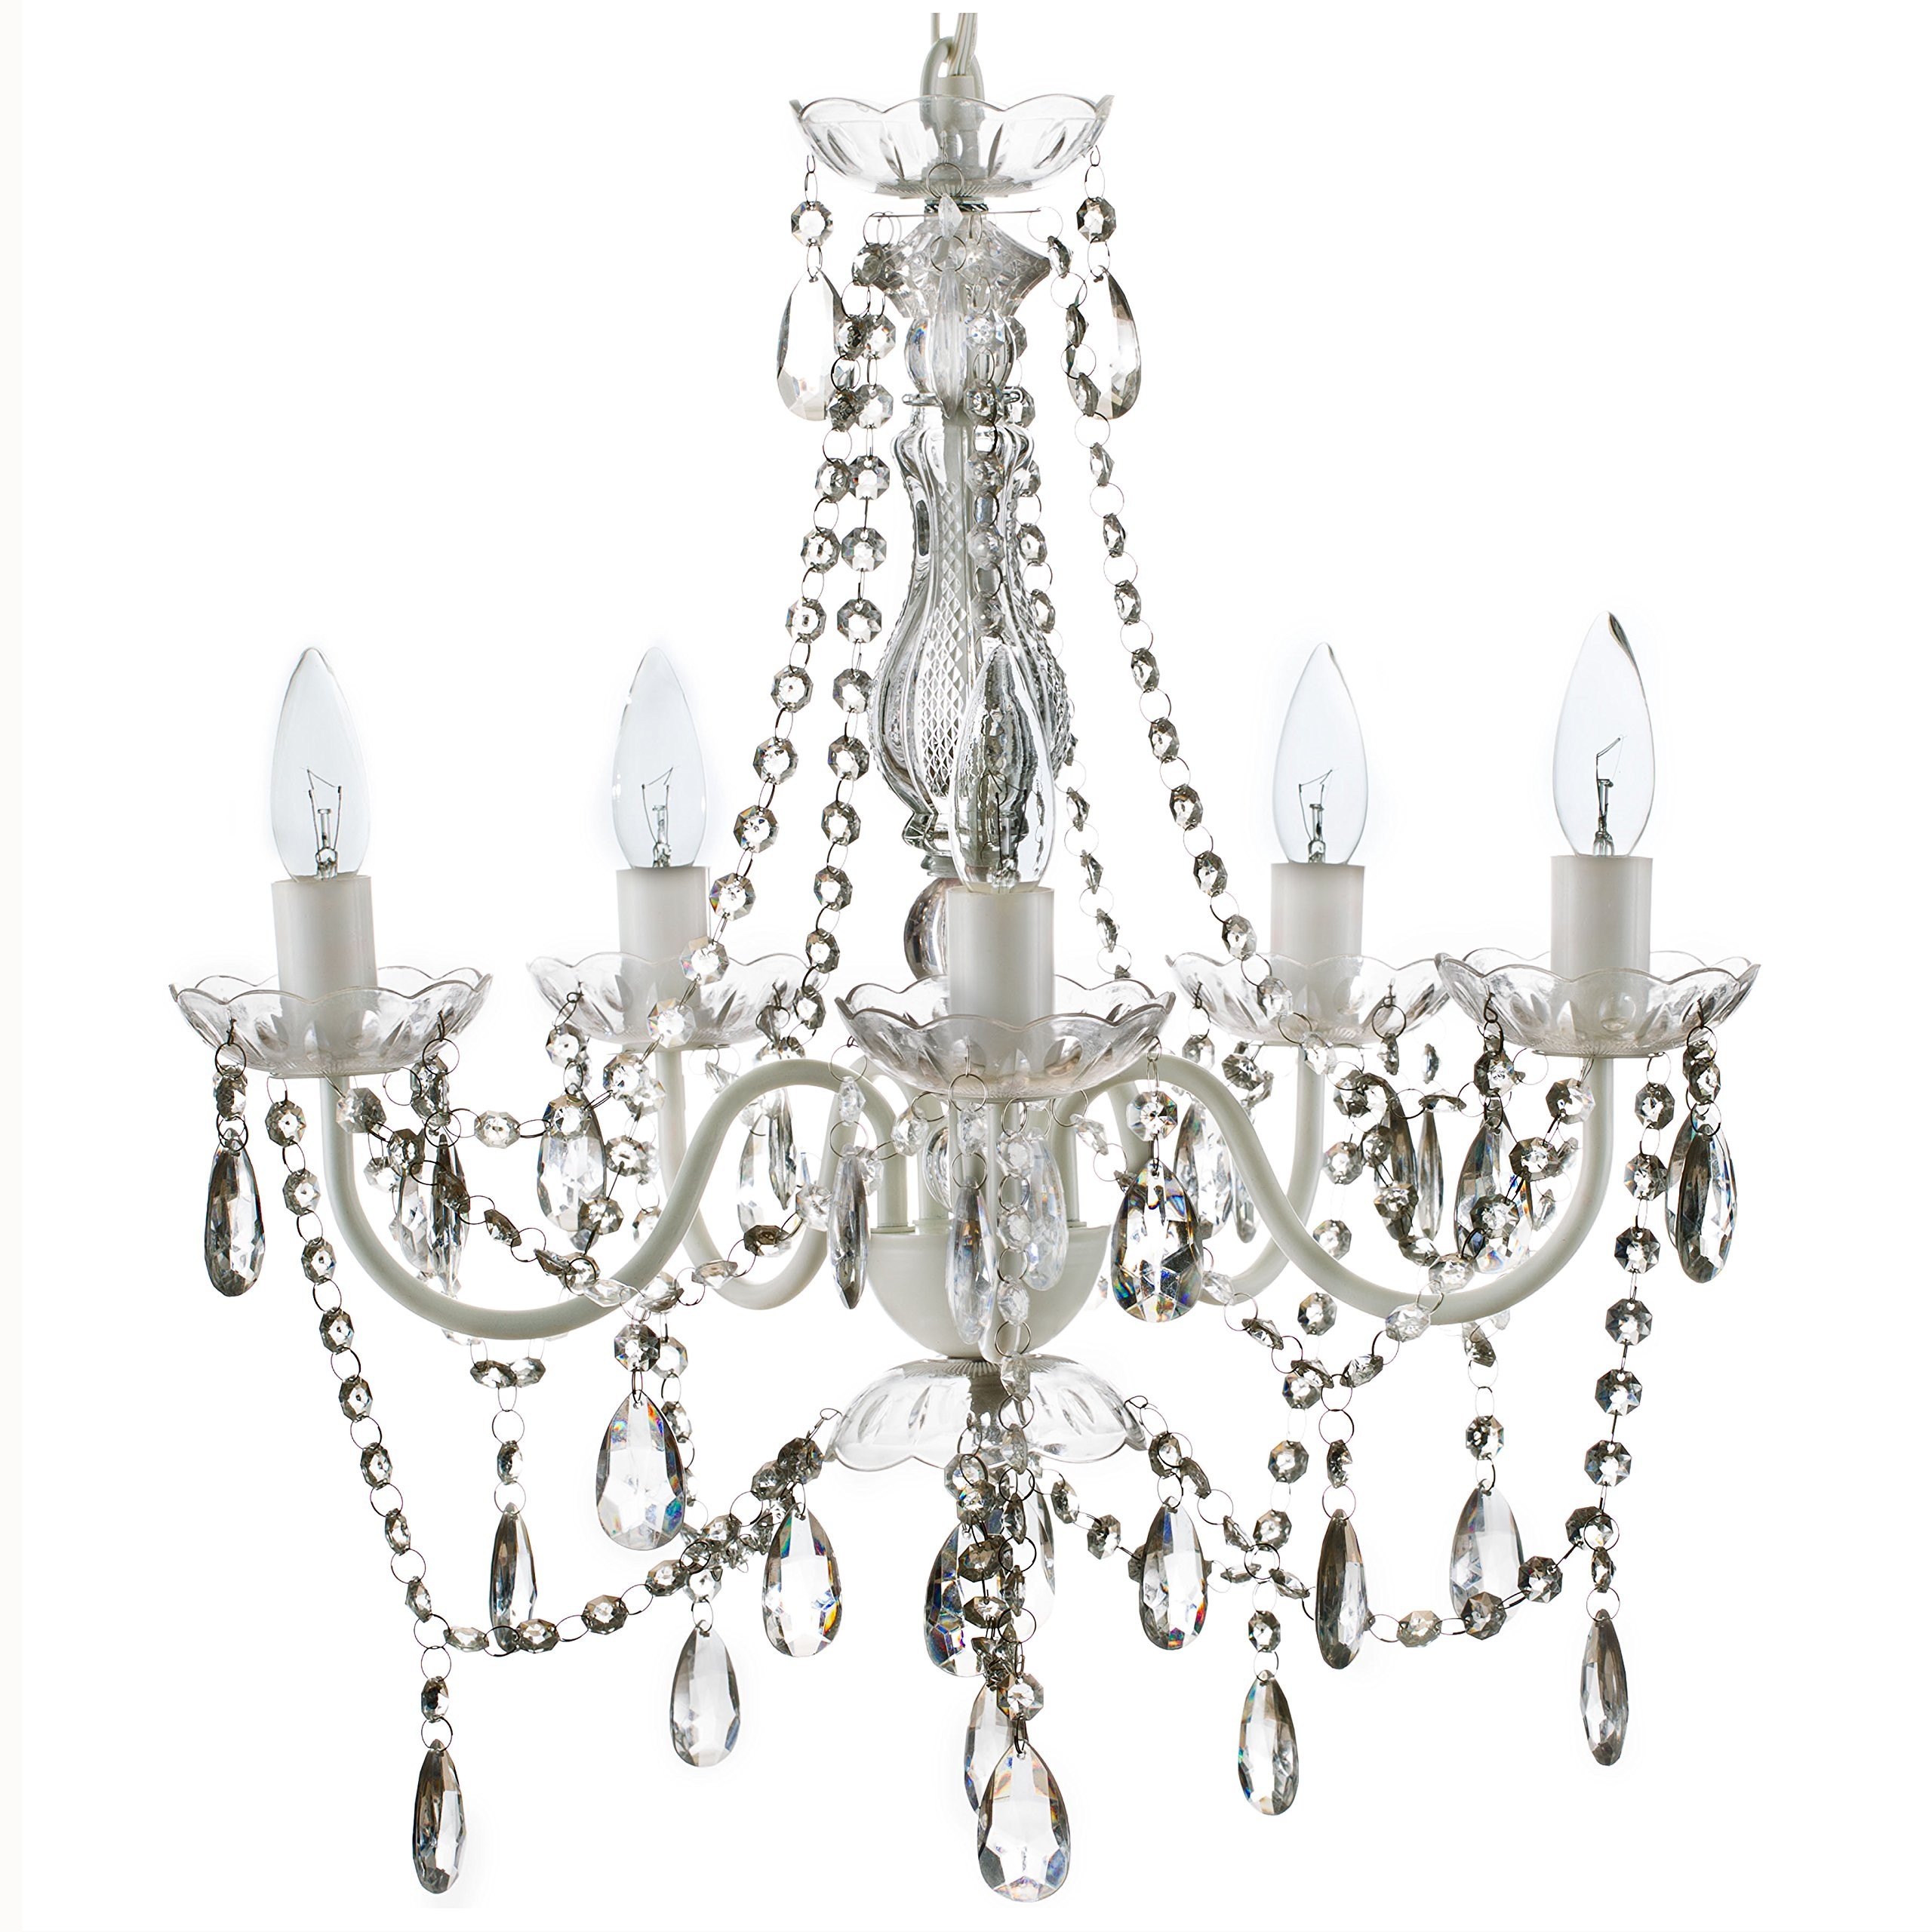 The Original Gypsy Color 5 Light Medium Crystal Chandelier H21'' W19'', White Metal Frame with Clear Acrylic Crystals (Better than Glass)